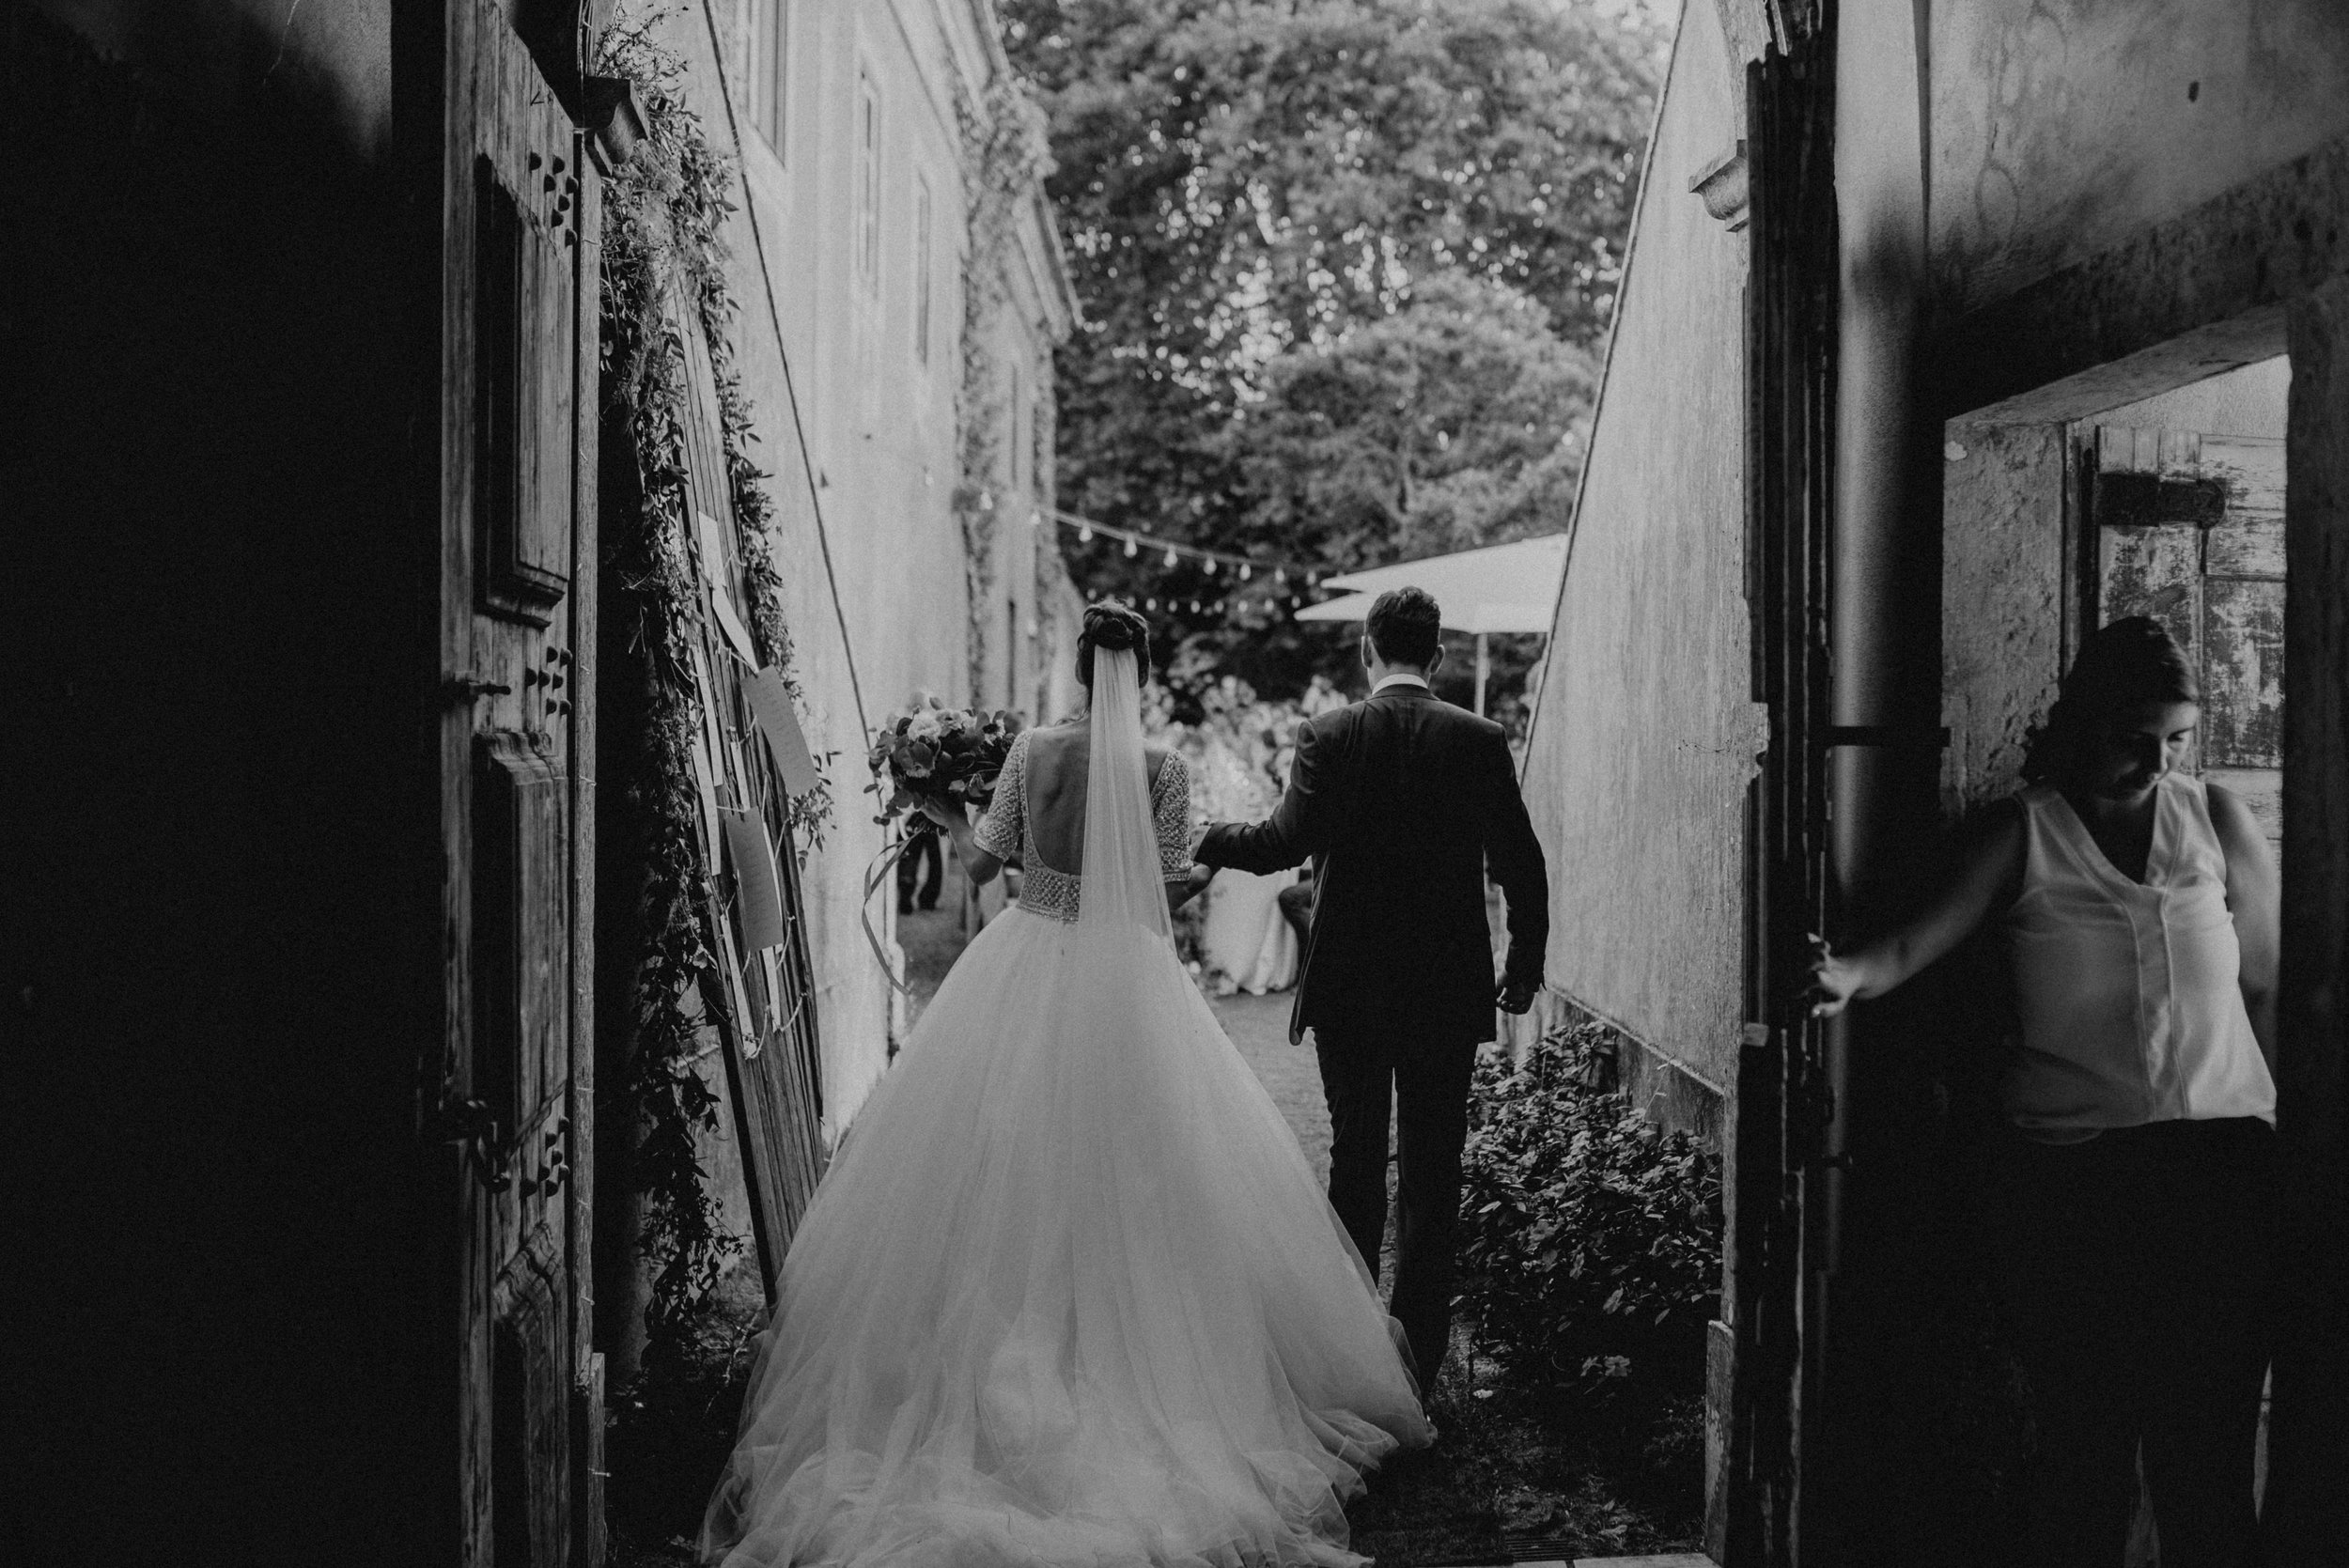 Lapela-photography-wedding-sintra-portugal-105.jpg